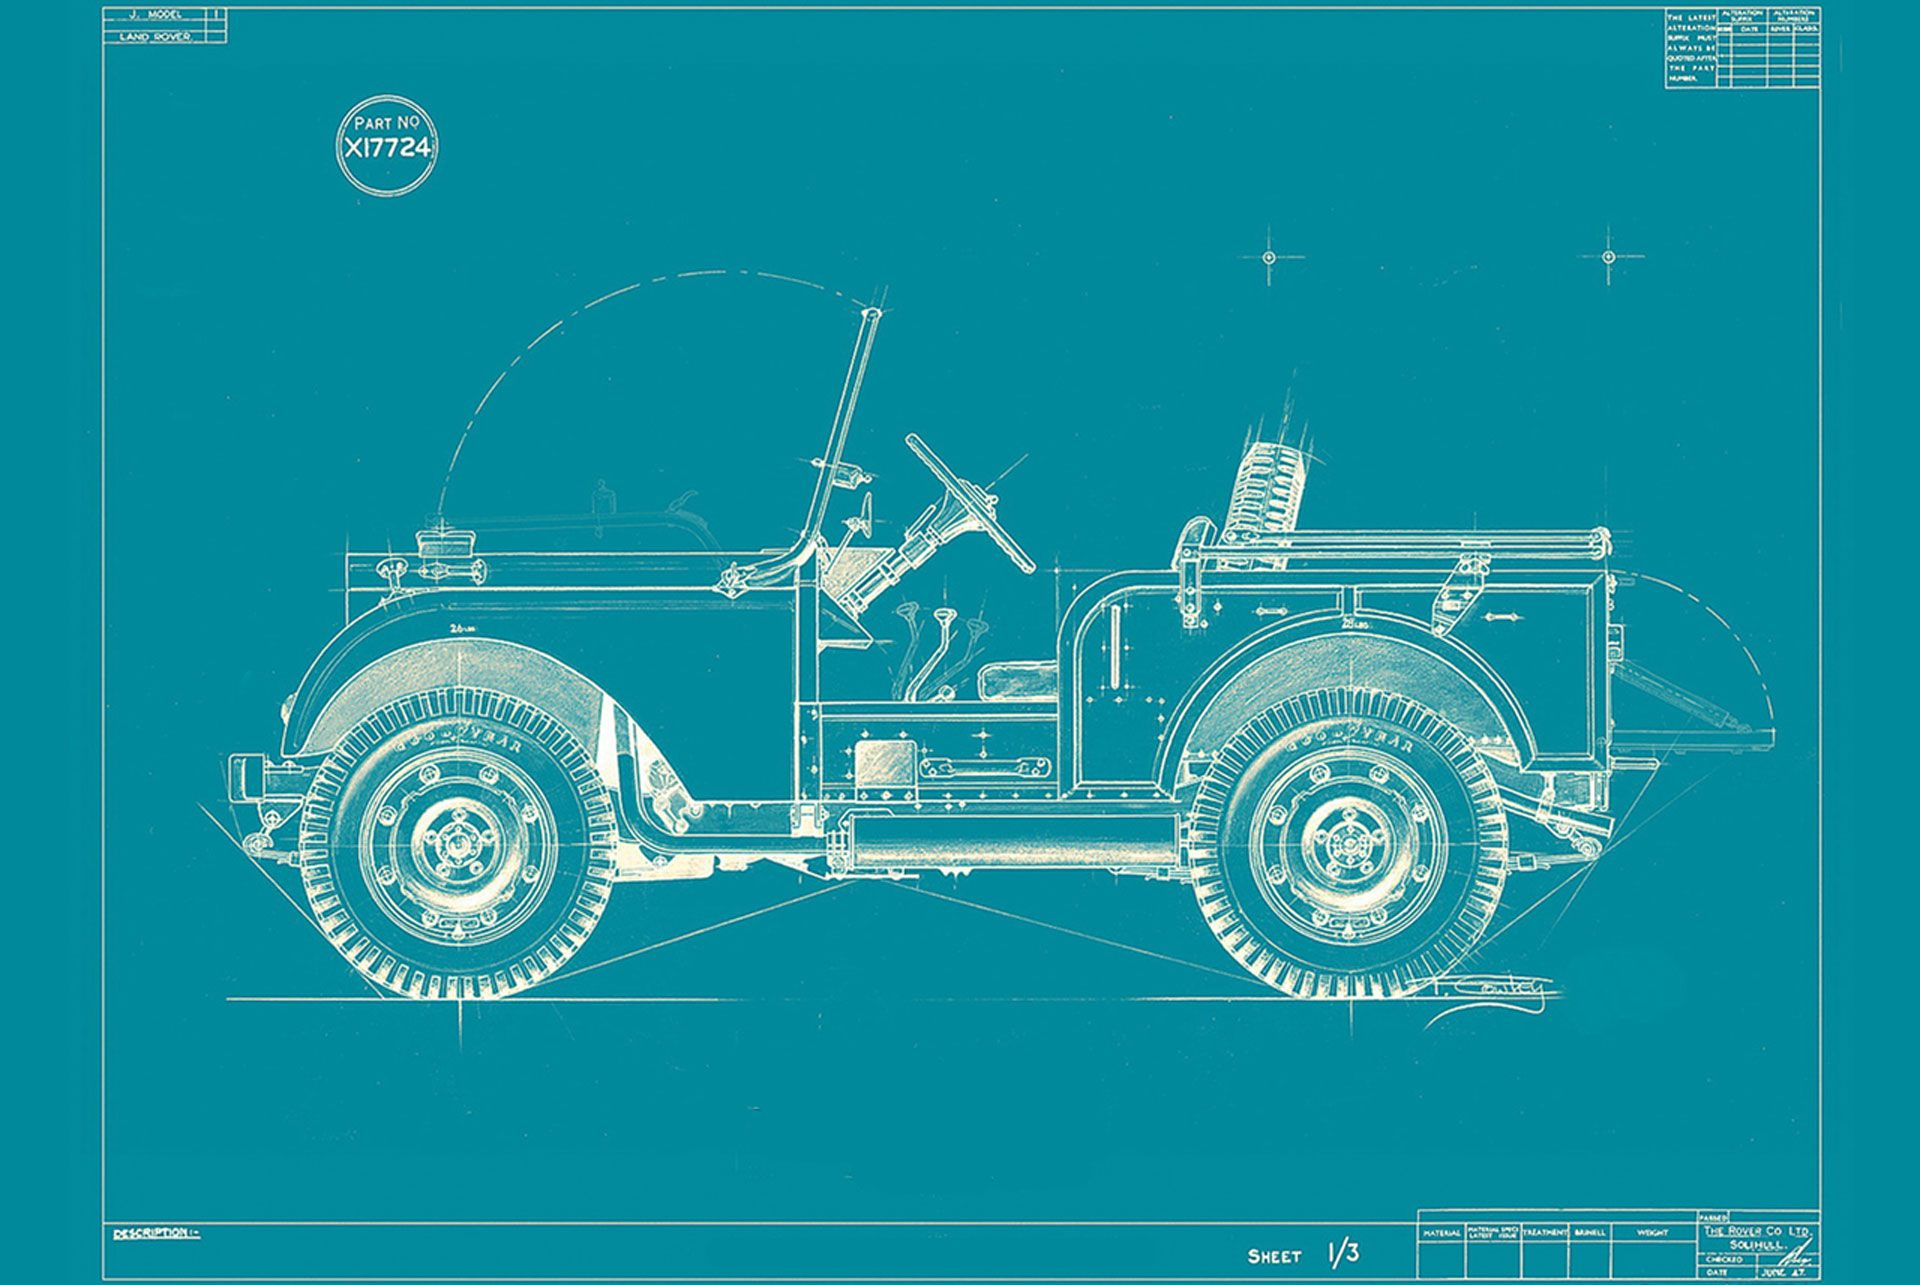 Willy S Jeep Type Vehicle Blueprint